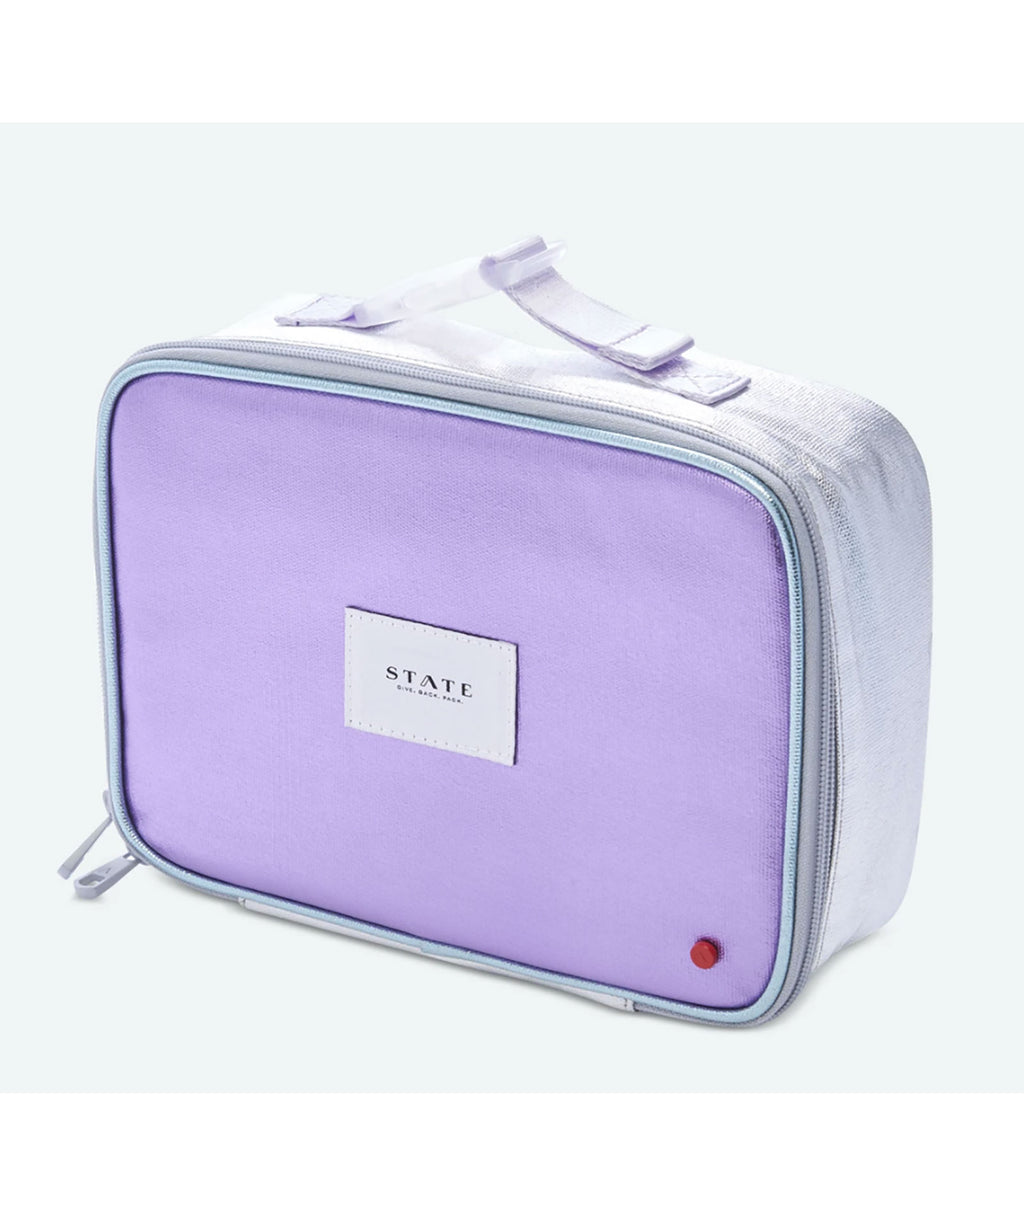 State Bags Rodgers Multi Metallic Lunch Box